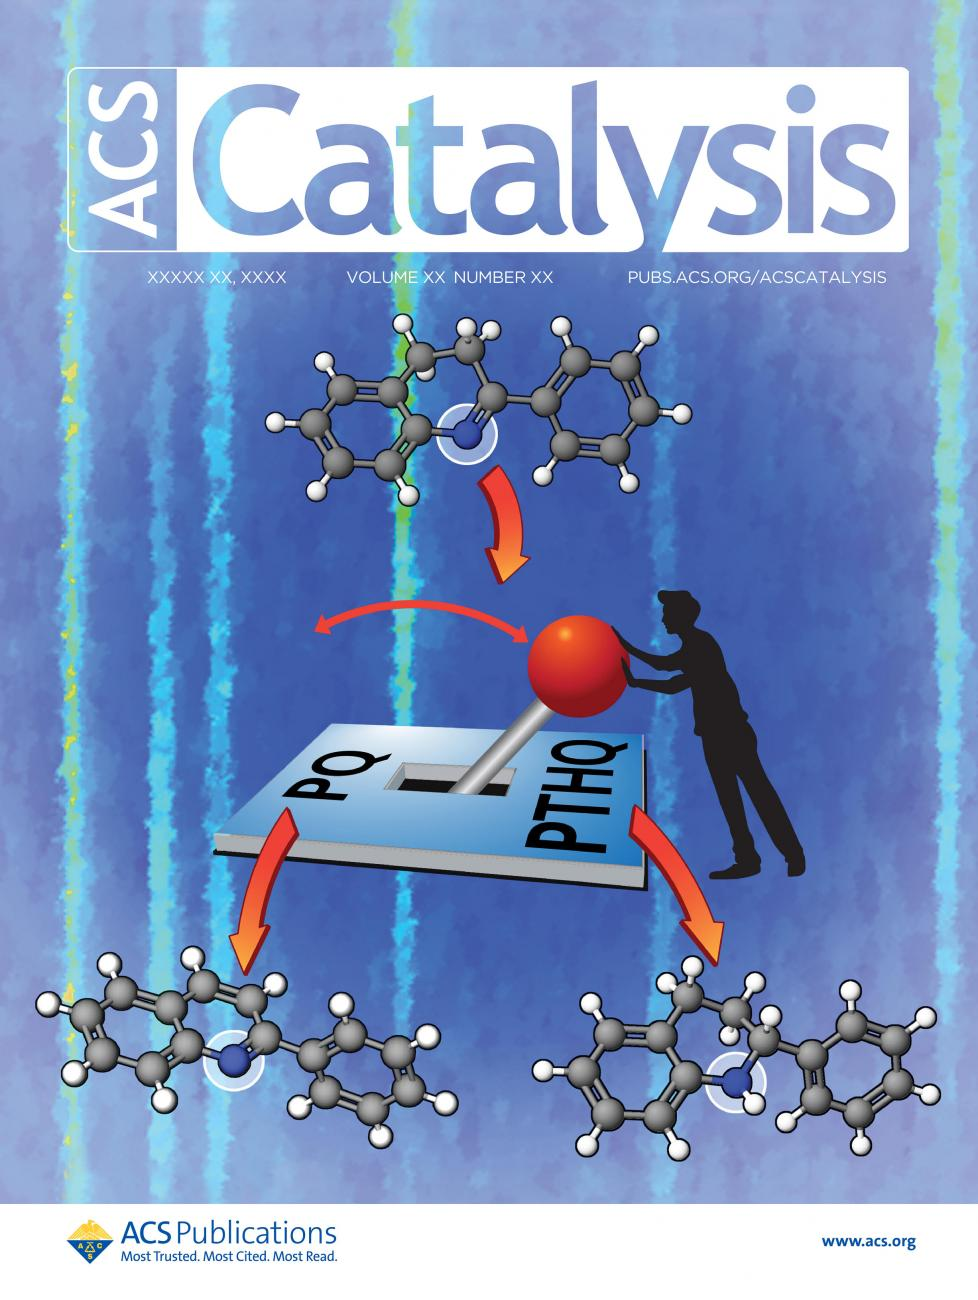 Cover of Catalysis journal featuring Ames Lab research